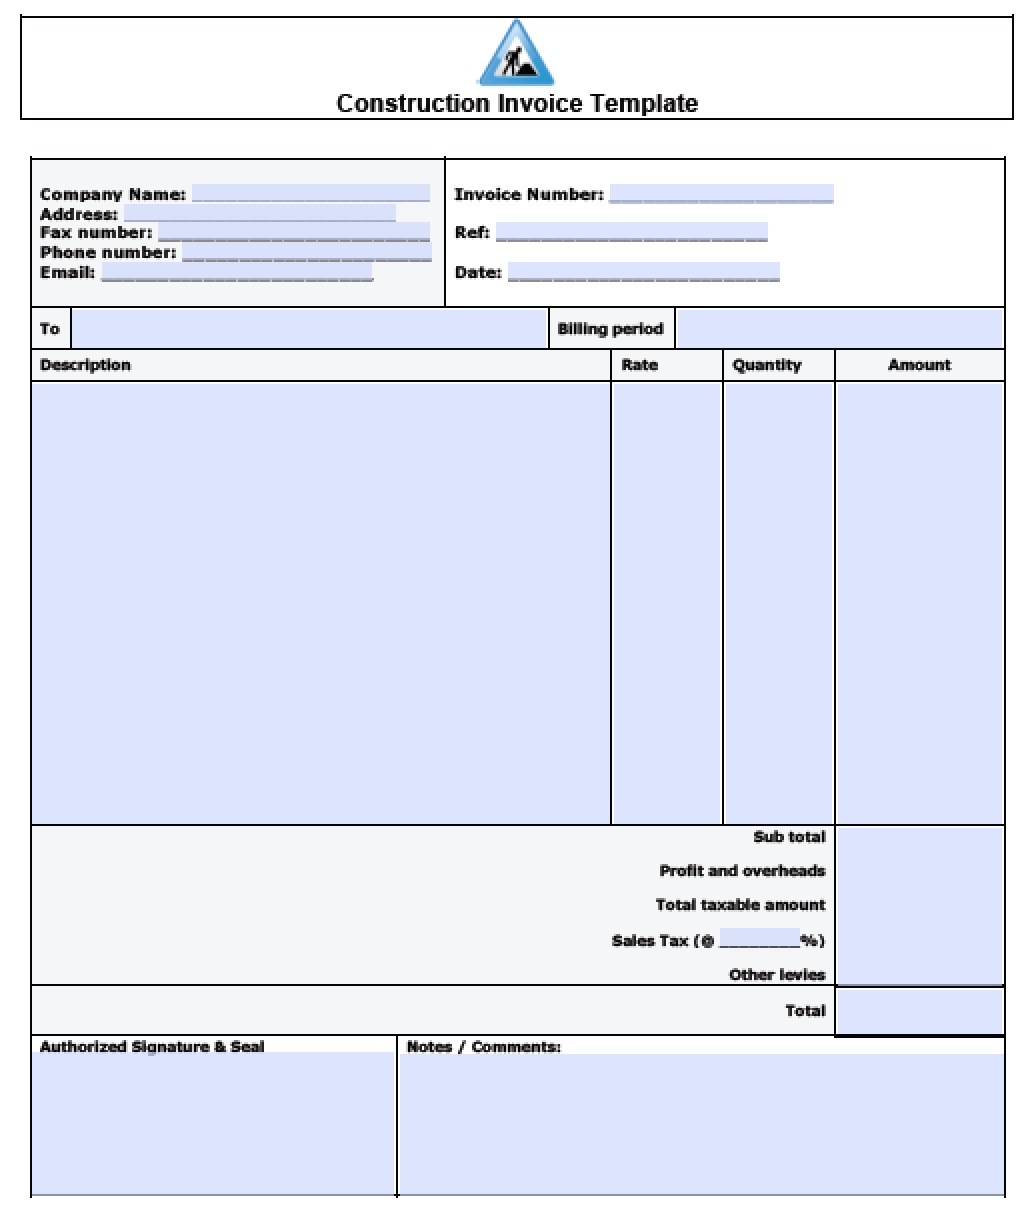 Free Construction Invoice Template Excel PDF Word Doc - Billing invoices templates